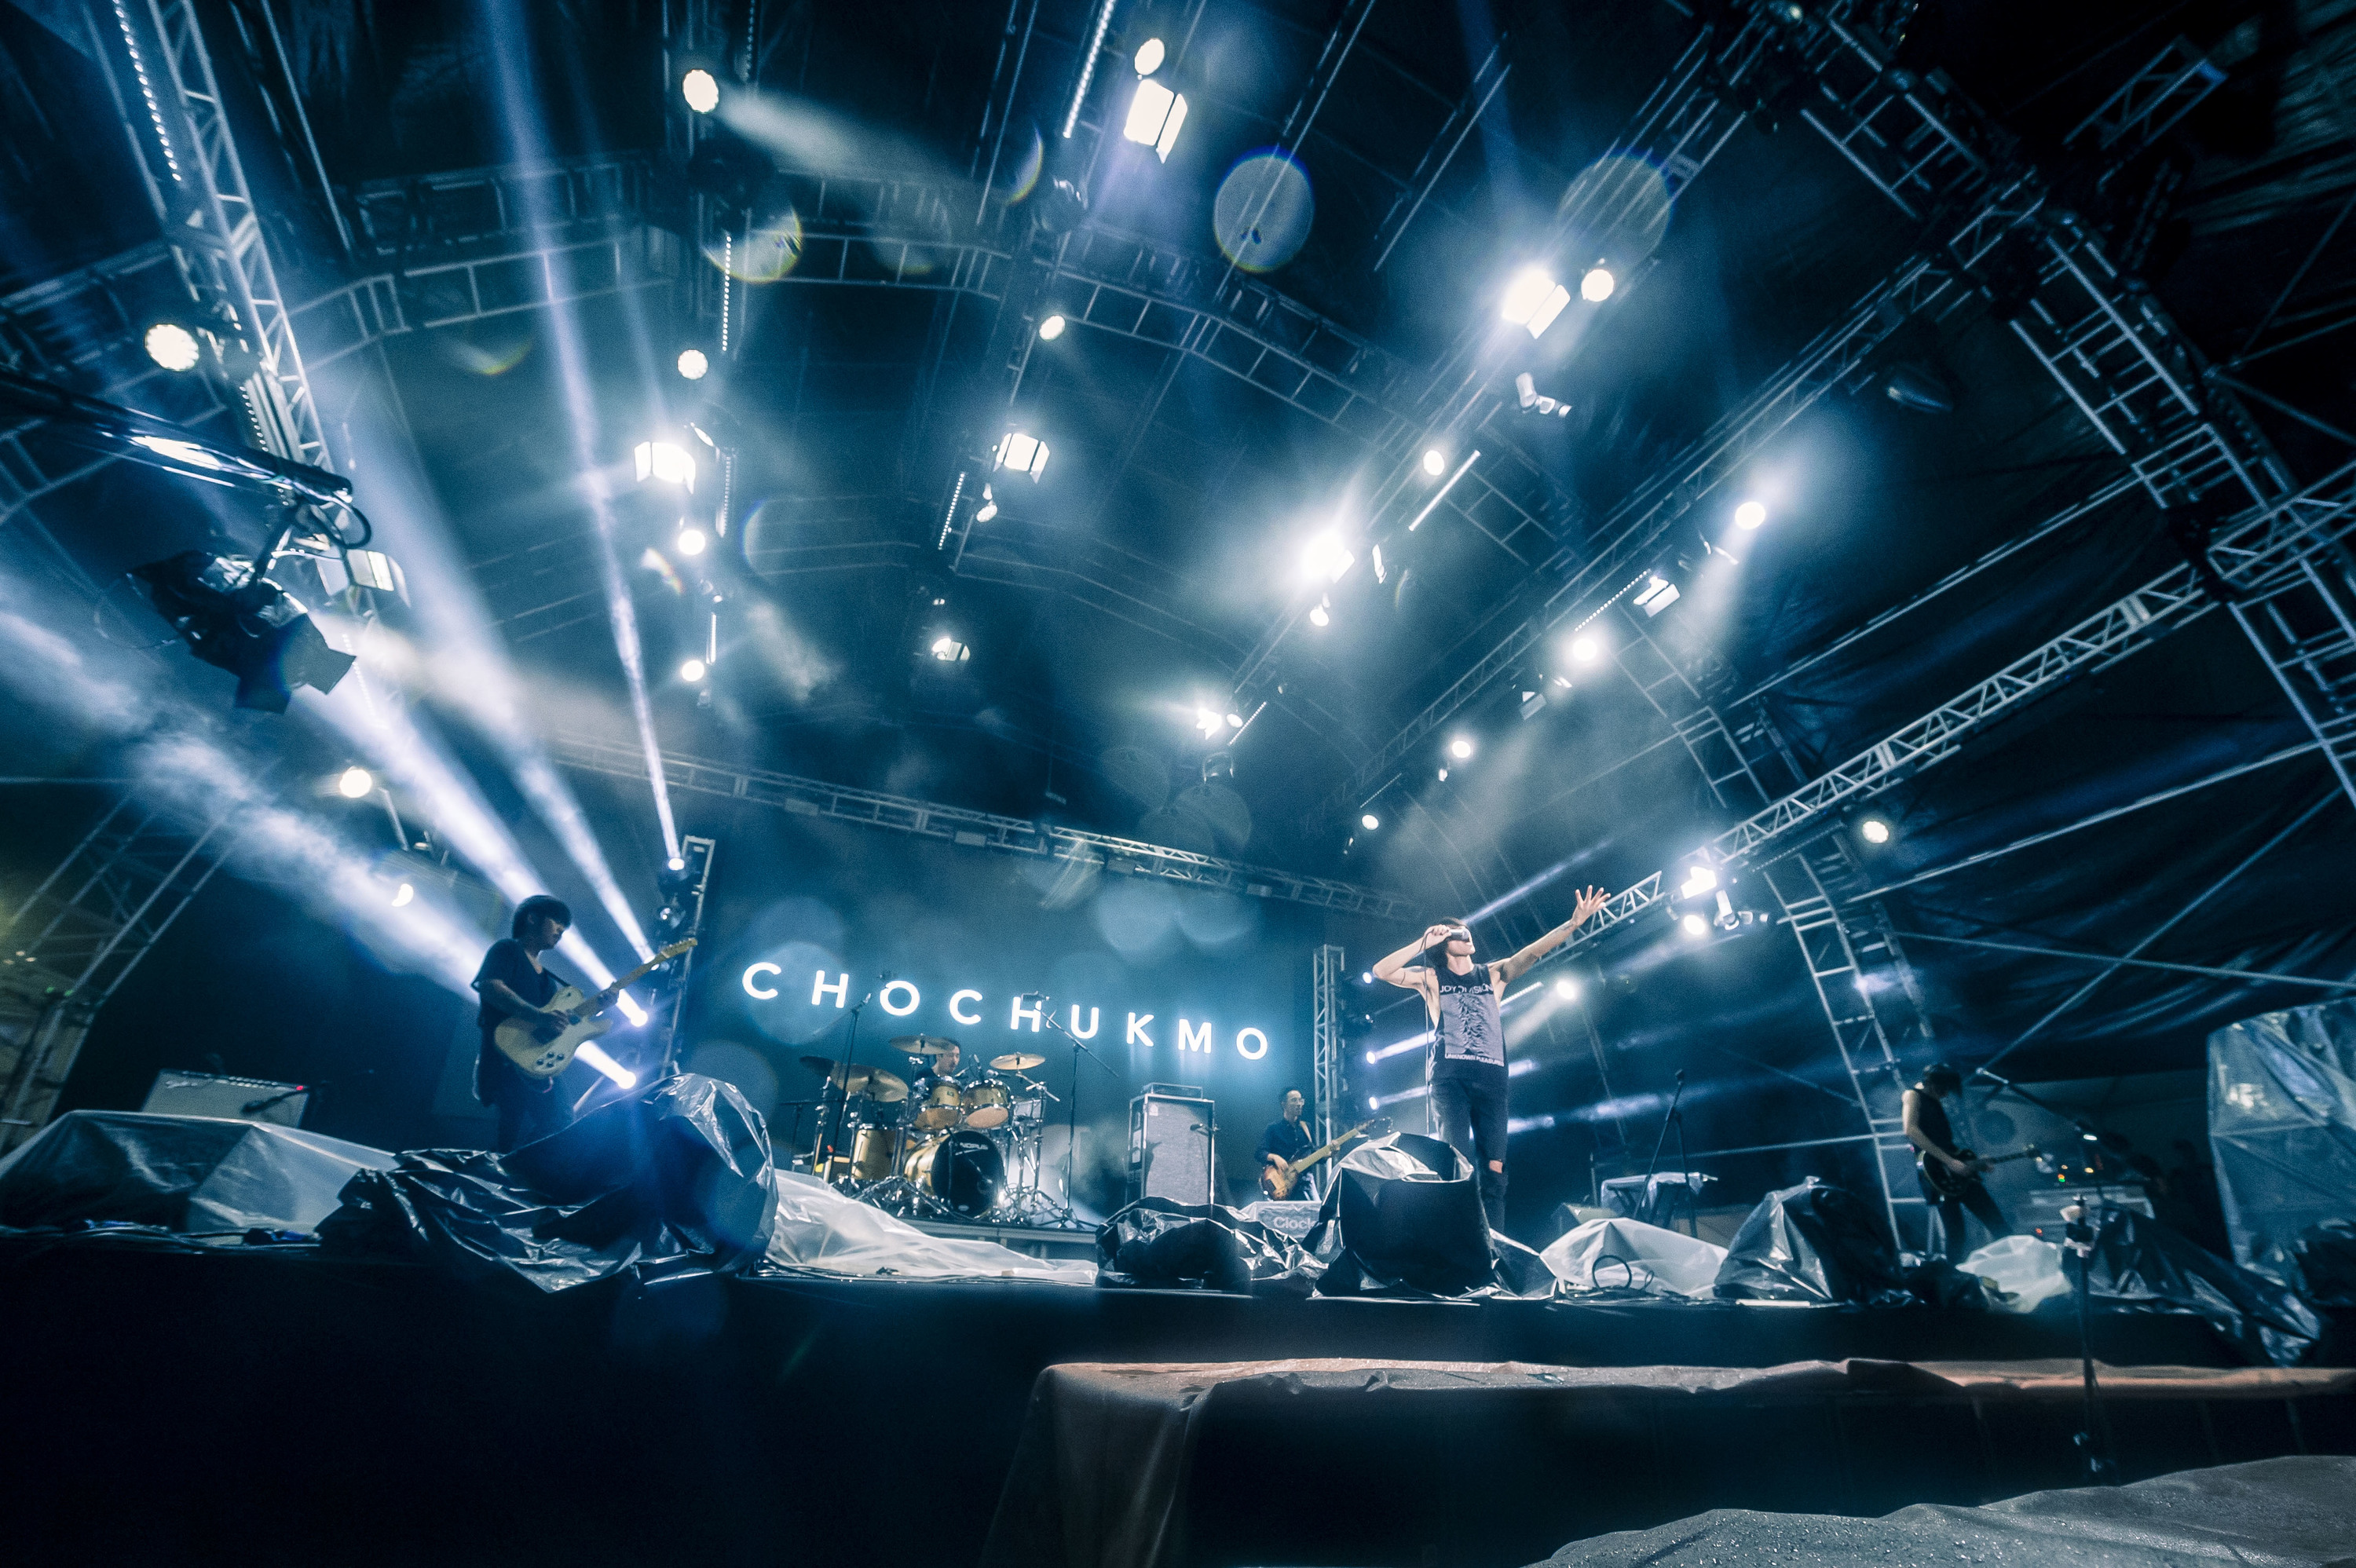 Chochukmo at Clockenflap